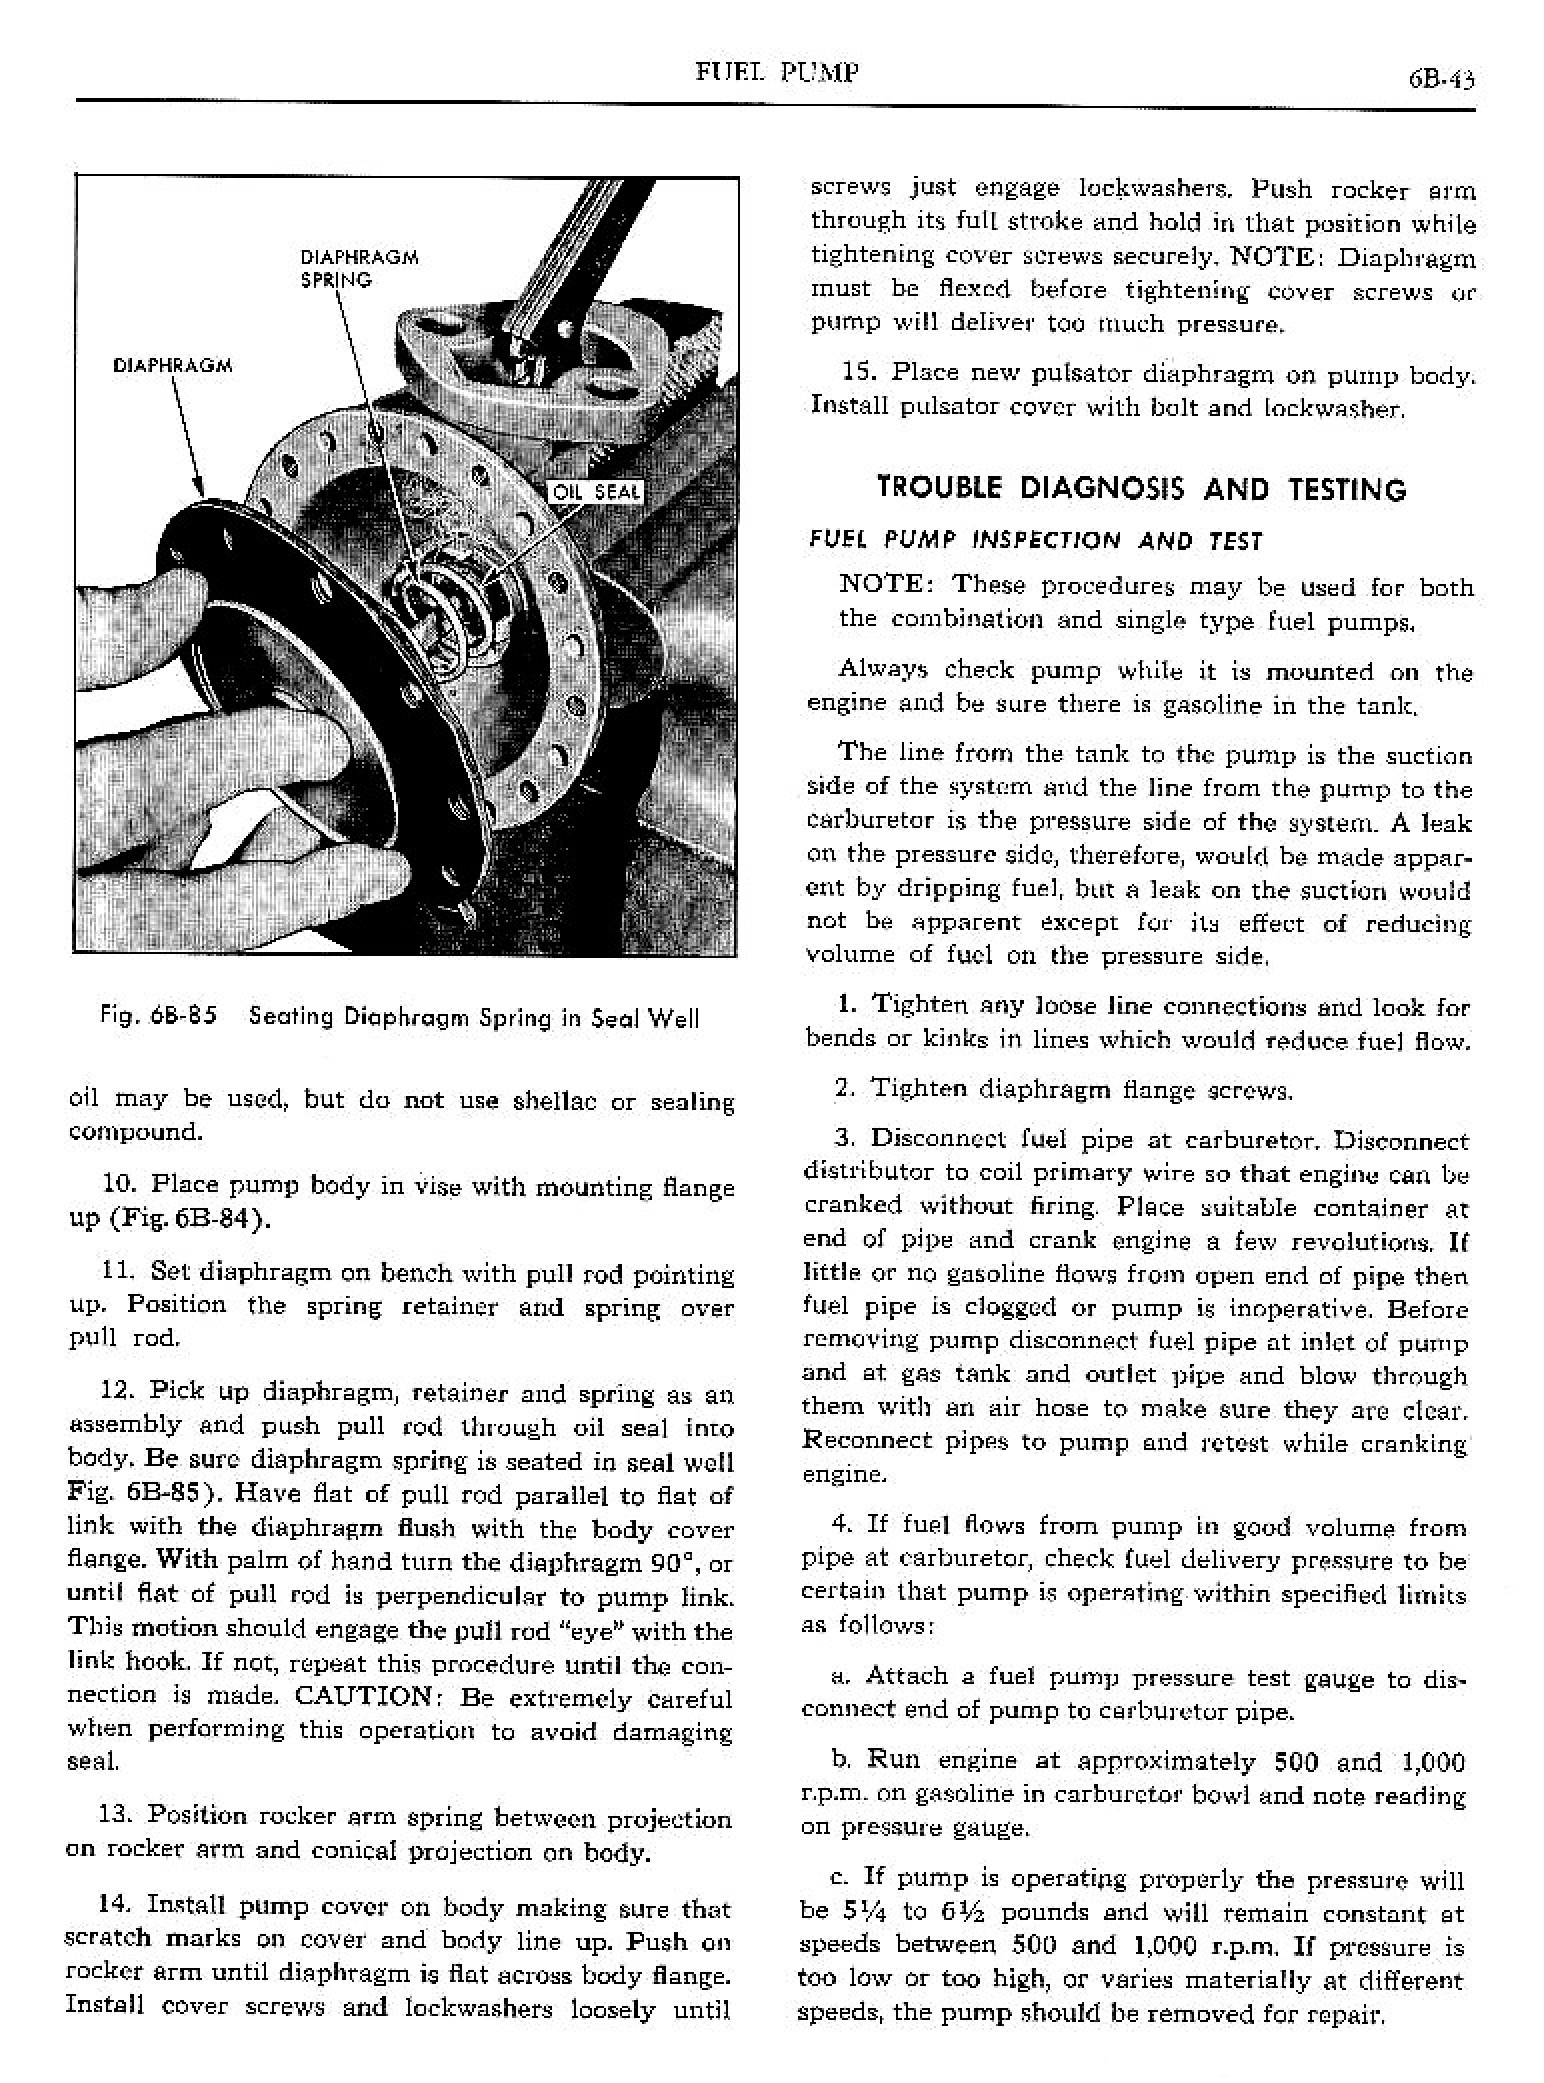 1960 Pontiac Shop Manual- Engine Fuel Page 46 of 46